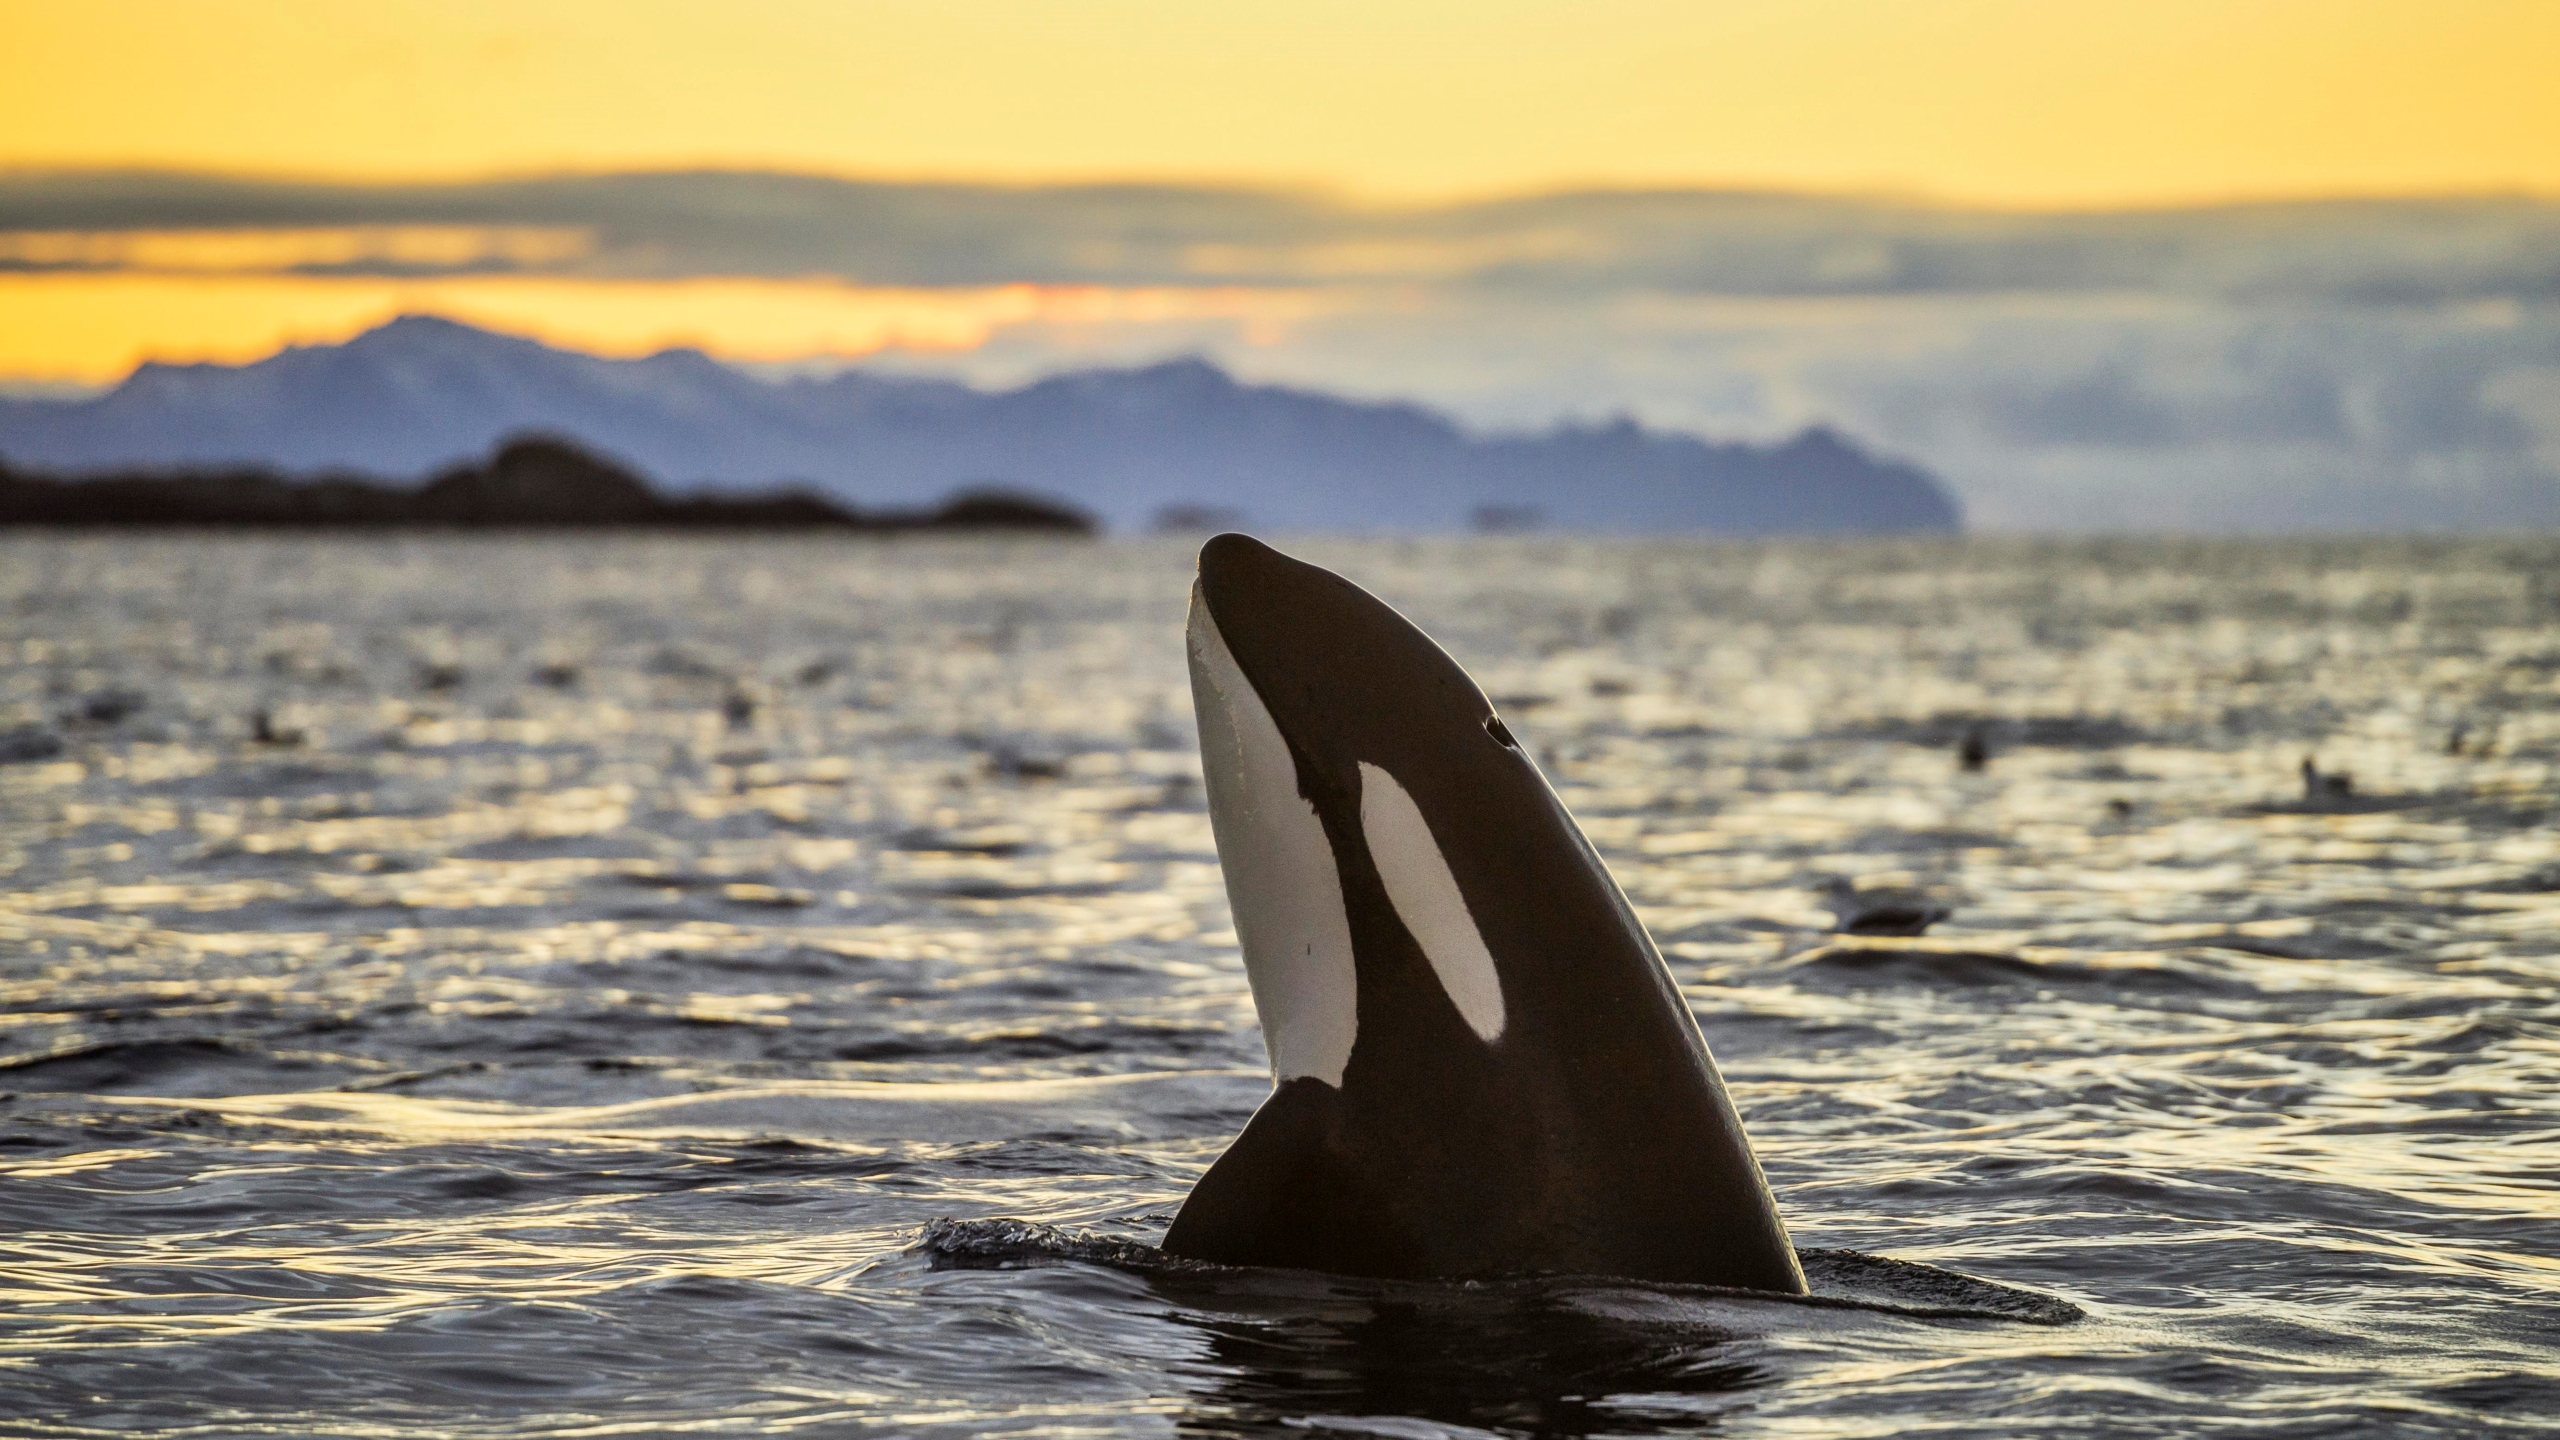 Orcas: Facts about killer whales | Live Science